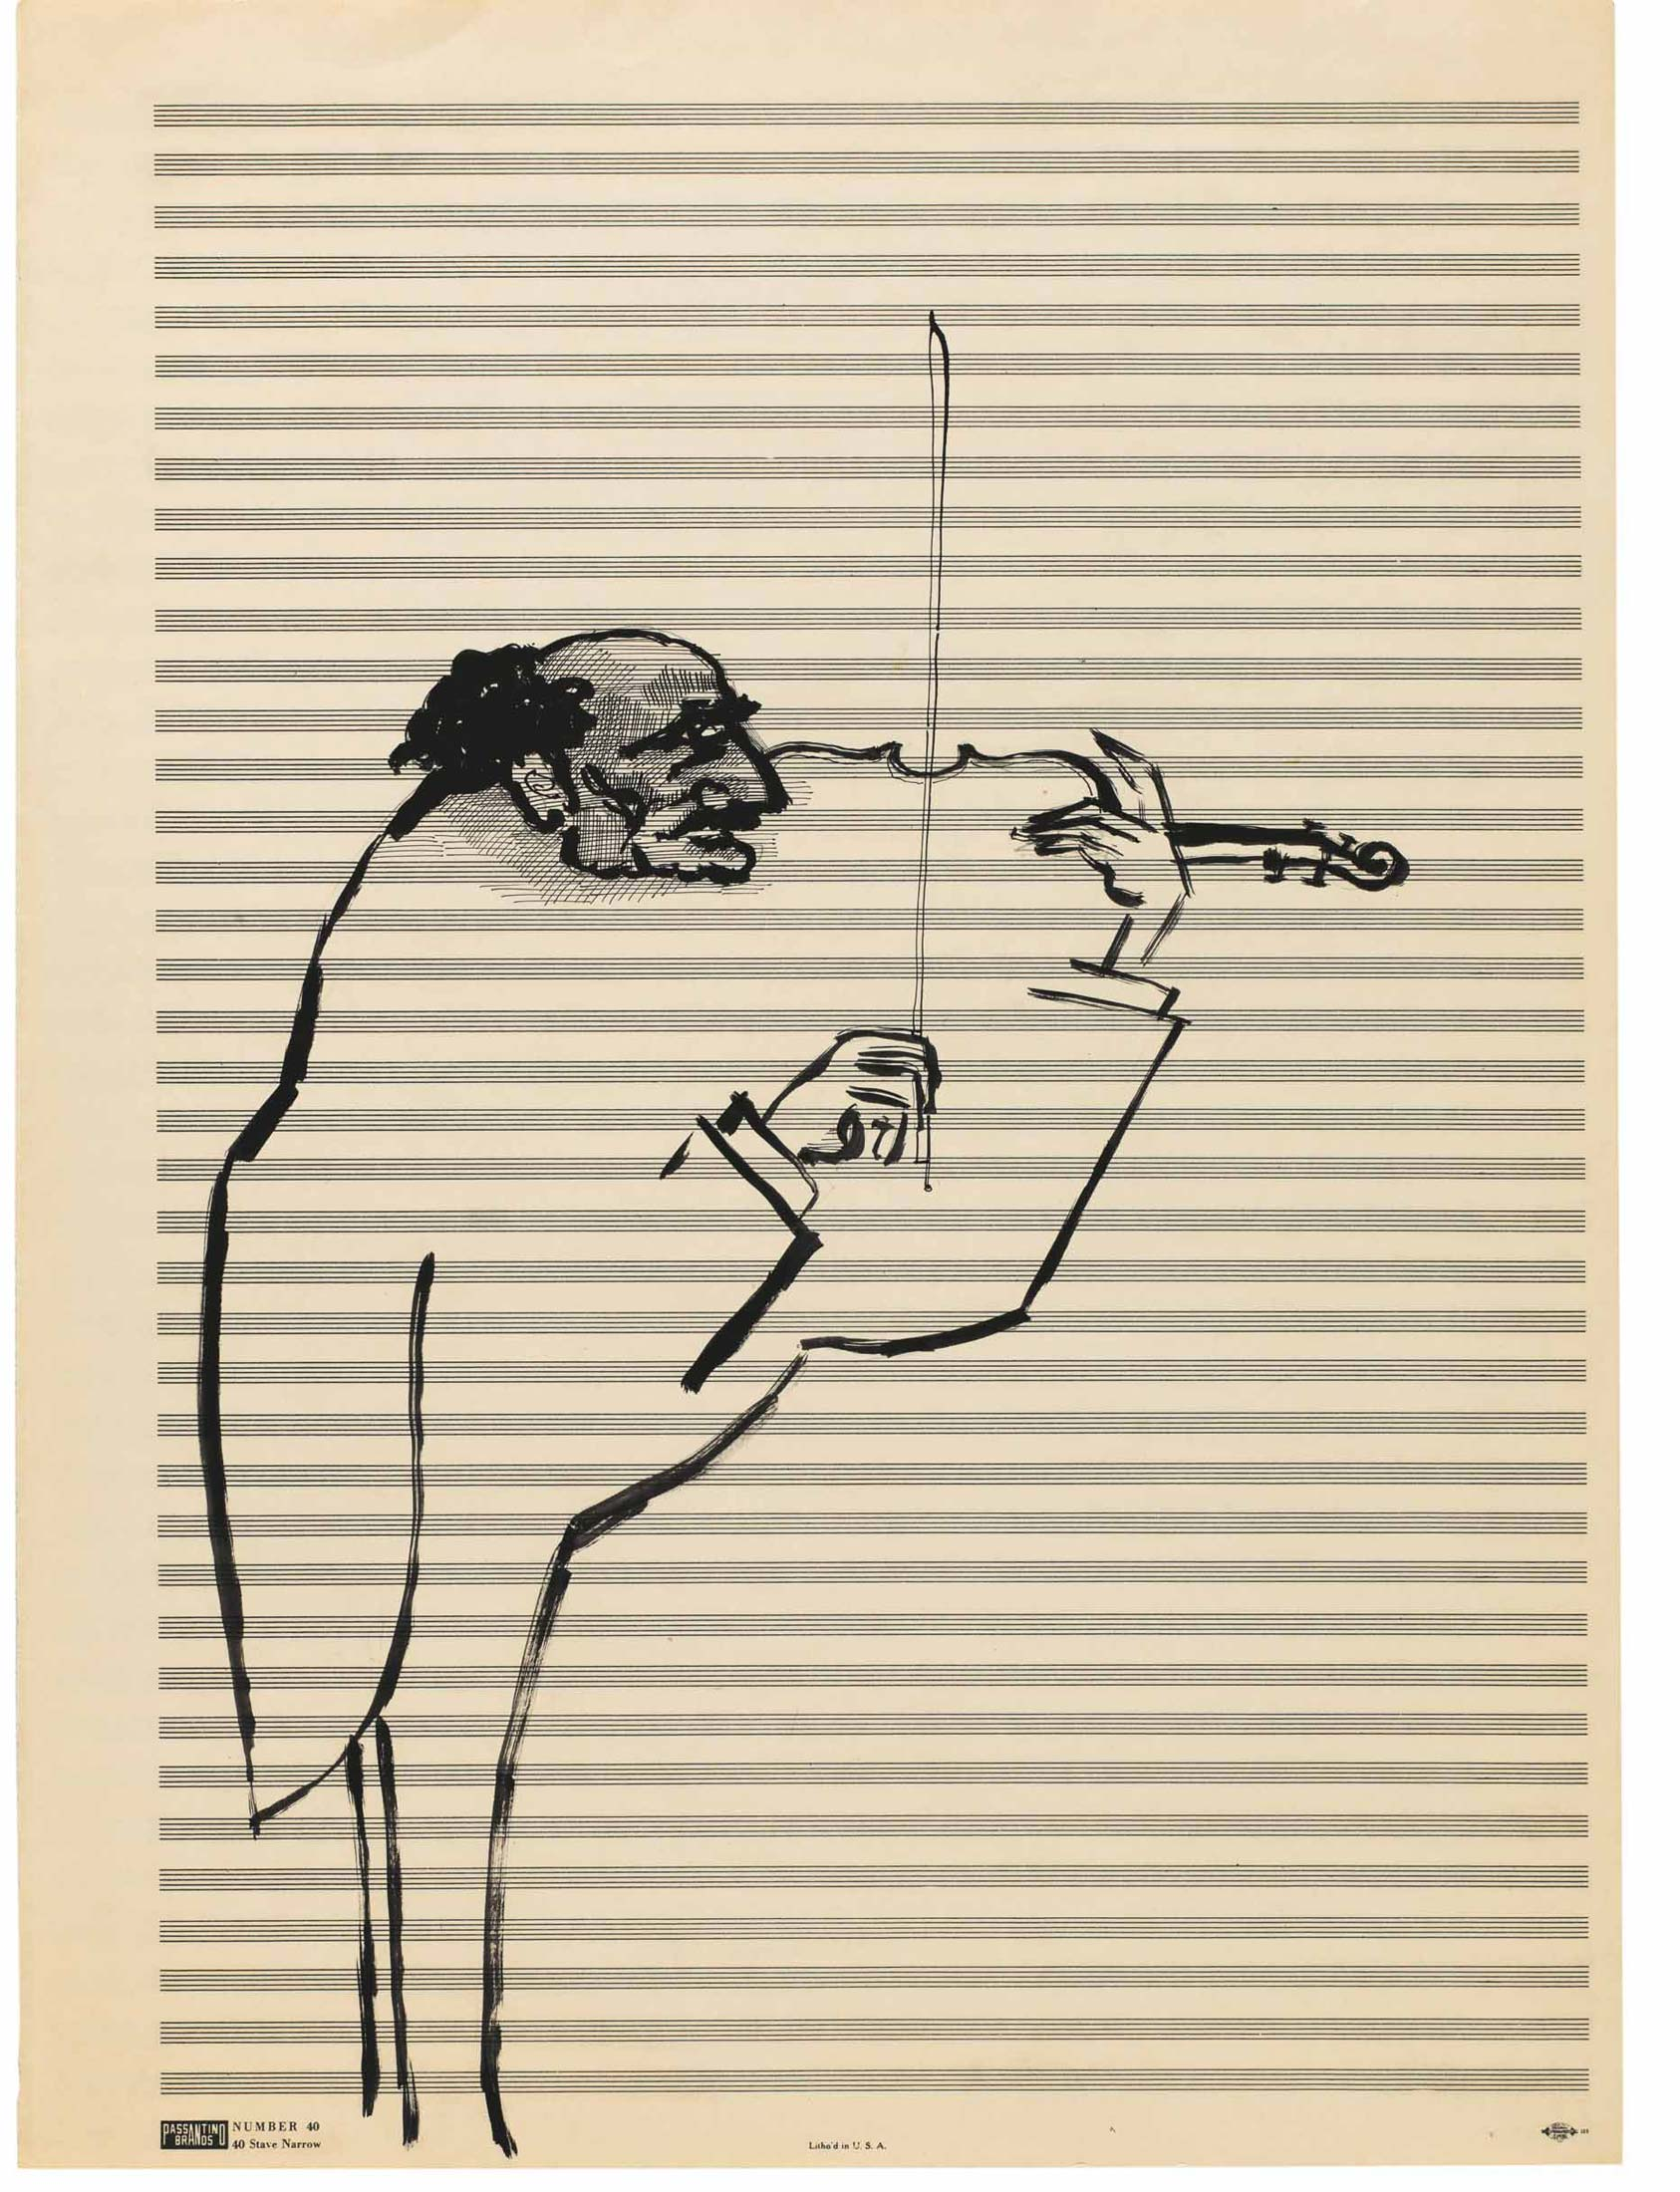 <em>Untitled</em>, c. 1950-52. Ink and pencil on sheet music paper, 19 1/8 x 14 1/8 in. The Saul Steinberg Foundation.